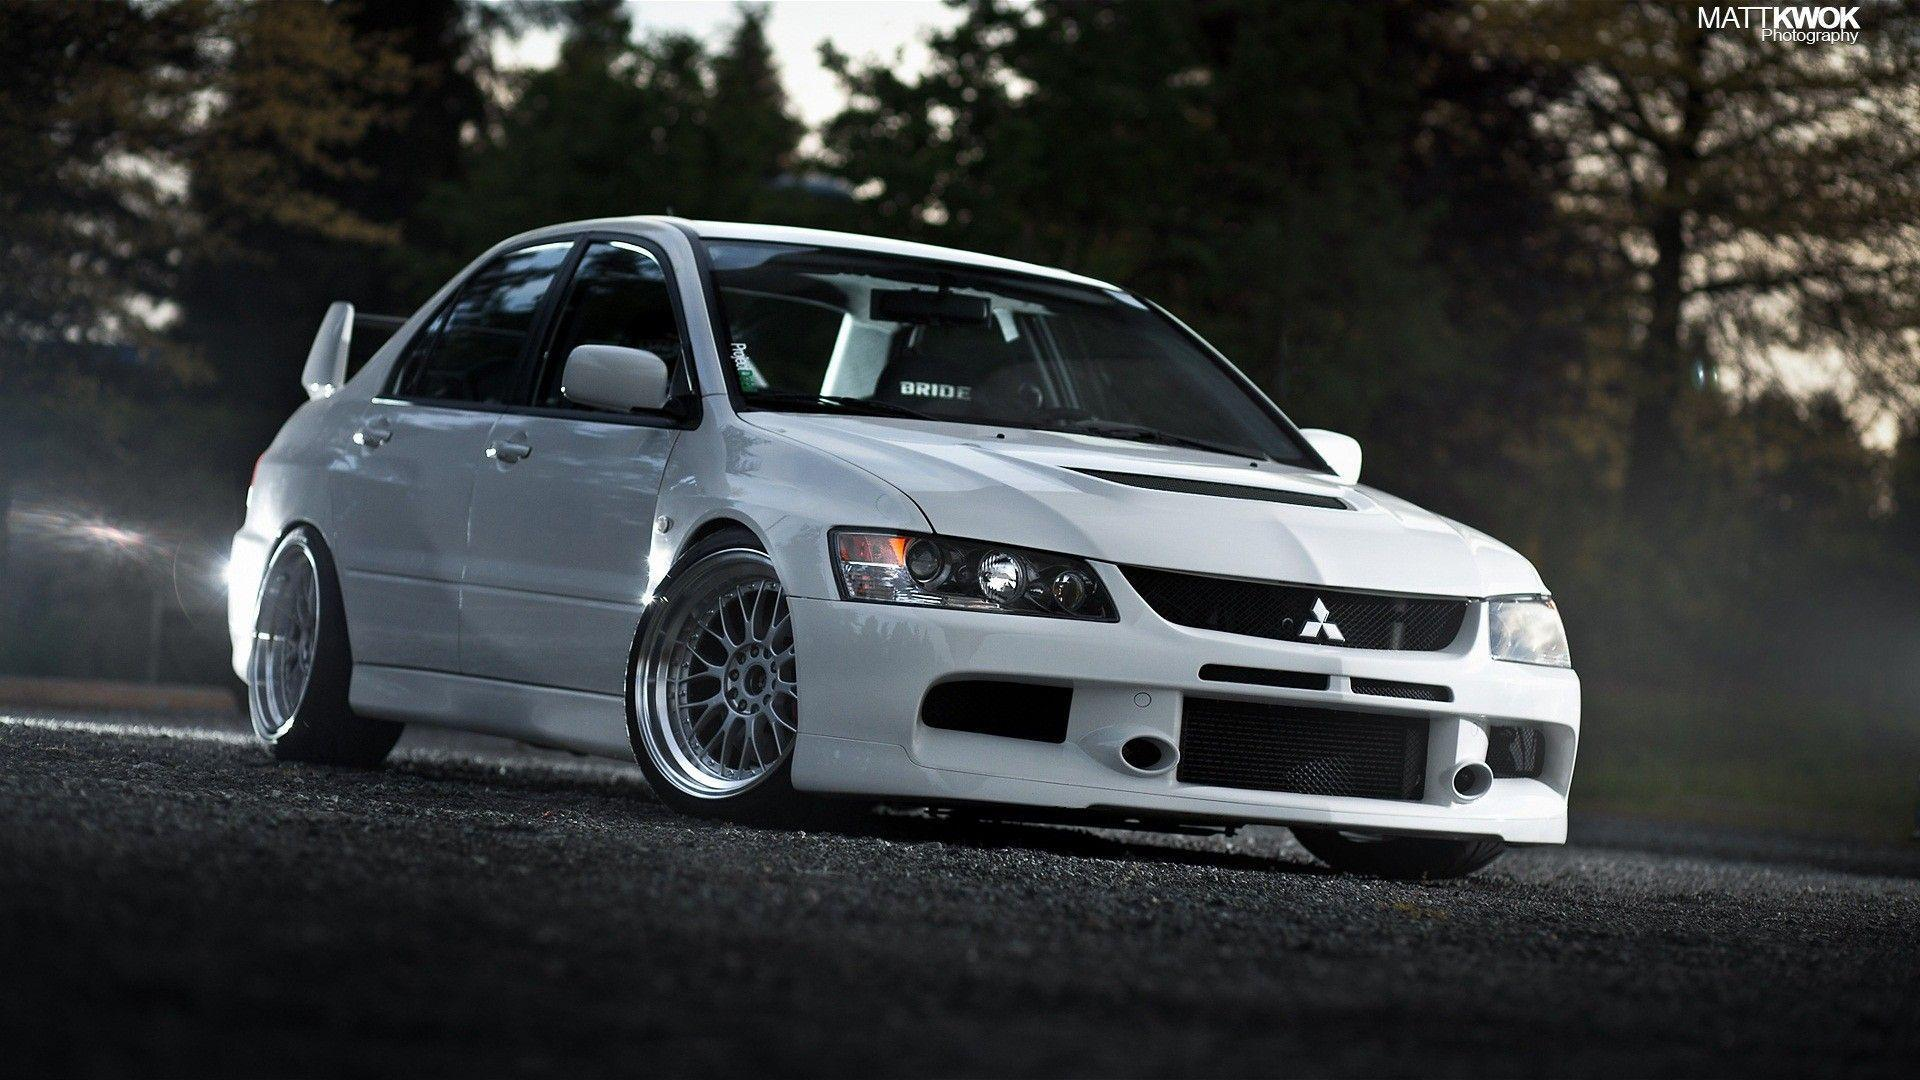 Mitsubishi Evo 8 Wallpapers Wallpaper Cave